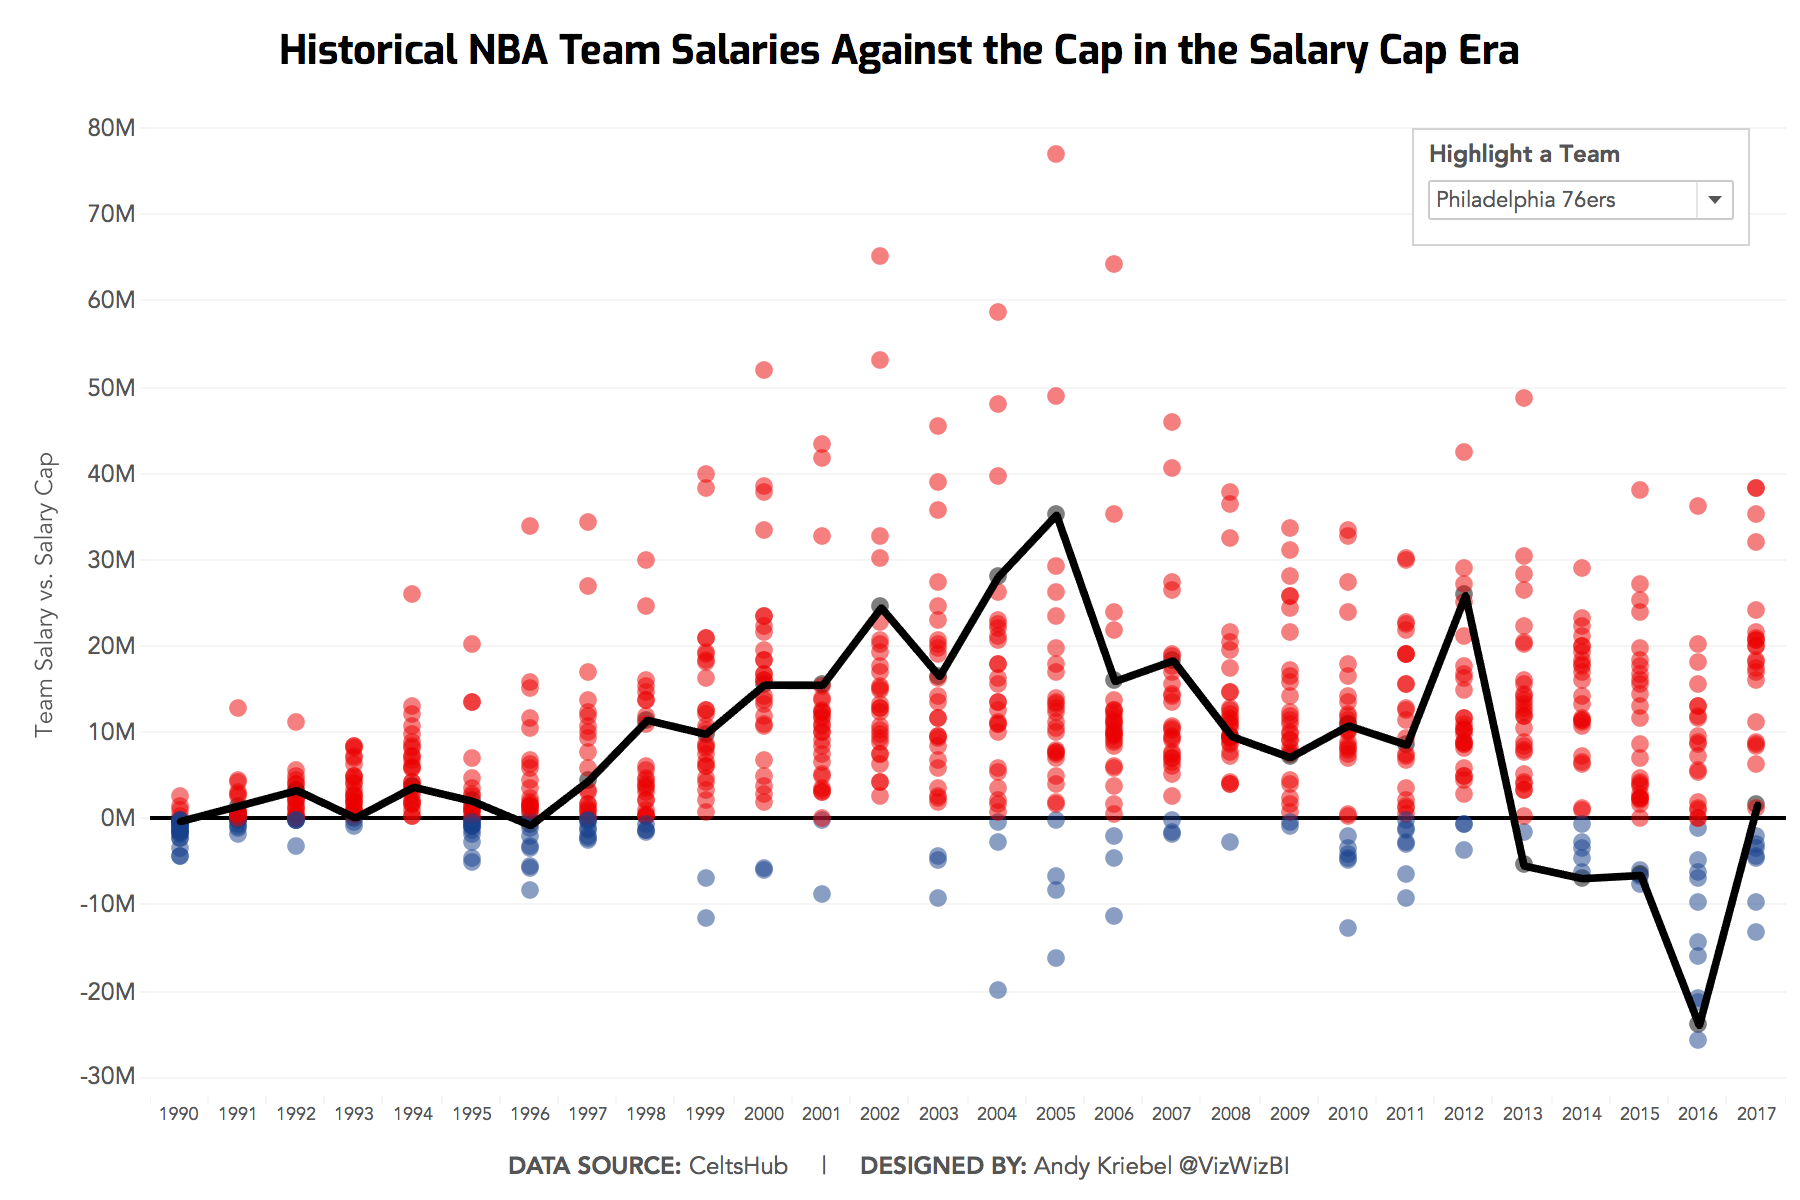 1982f77a822 Makeover Monday  Historical NBA Team Salaries Against the Cap in the Salary  Cap Era